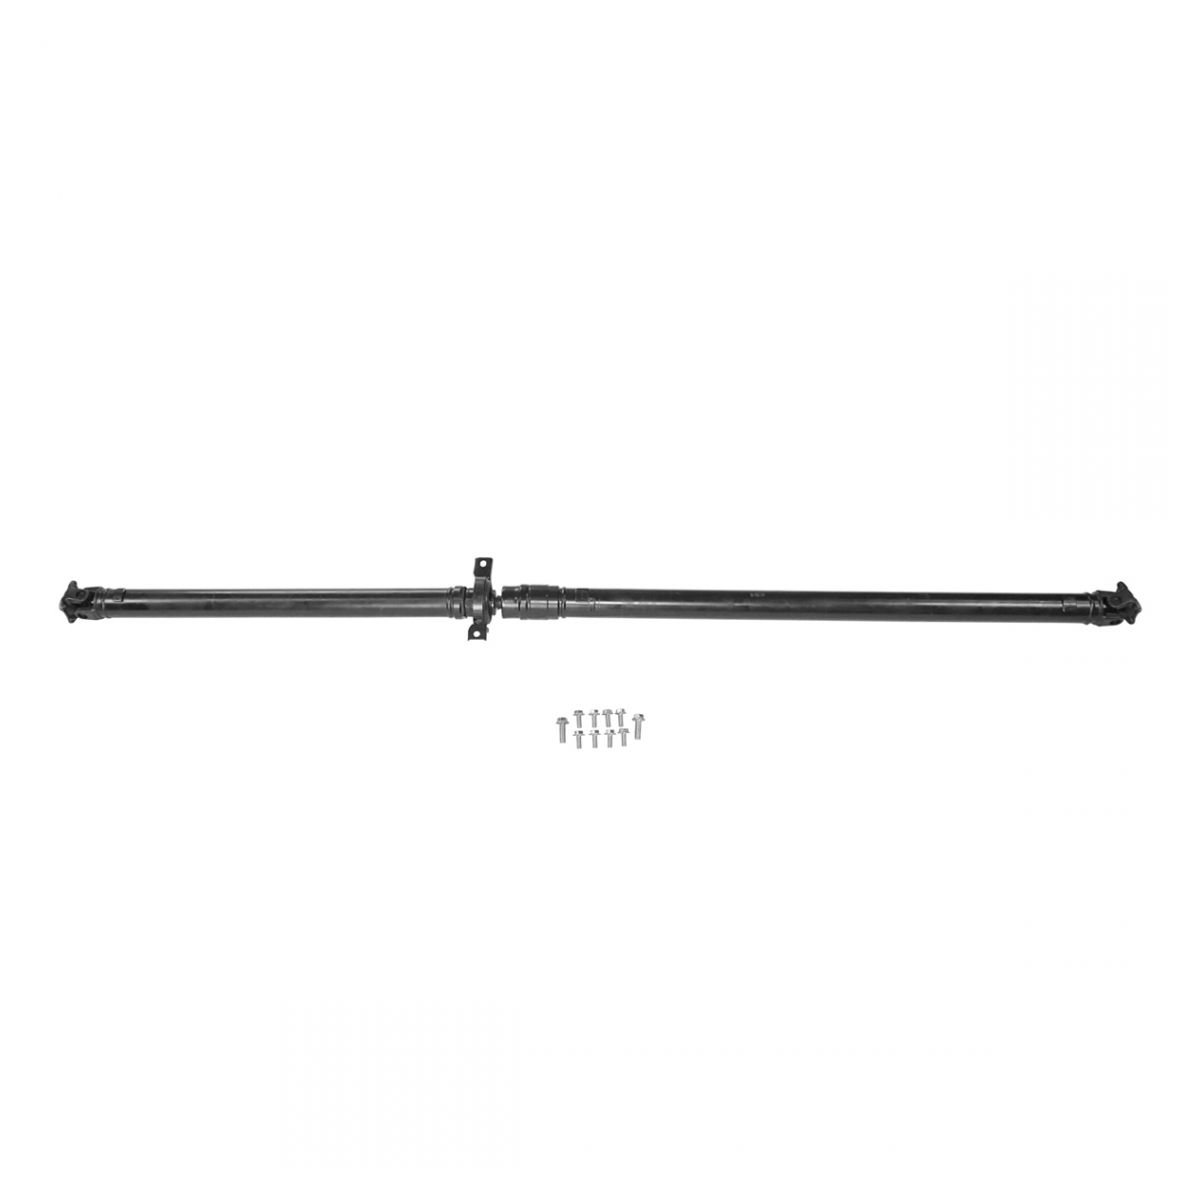 Rear Driveshaft Drive Shaft and Hardware for 02-06 Honda CR-V 4WD by AM Autoparts